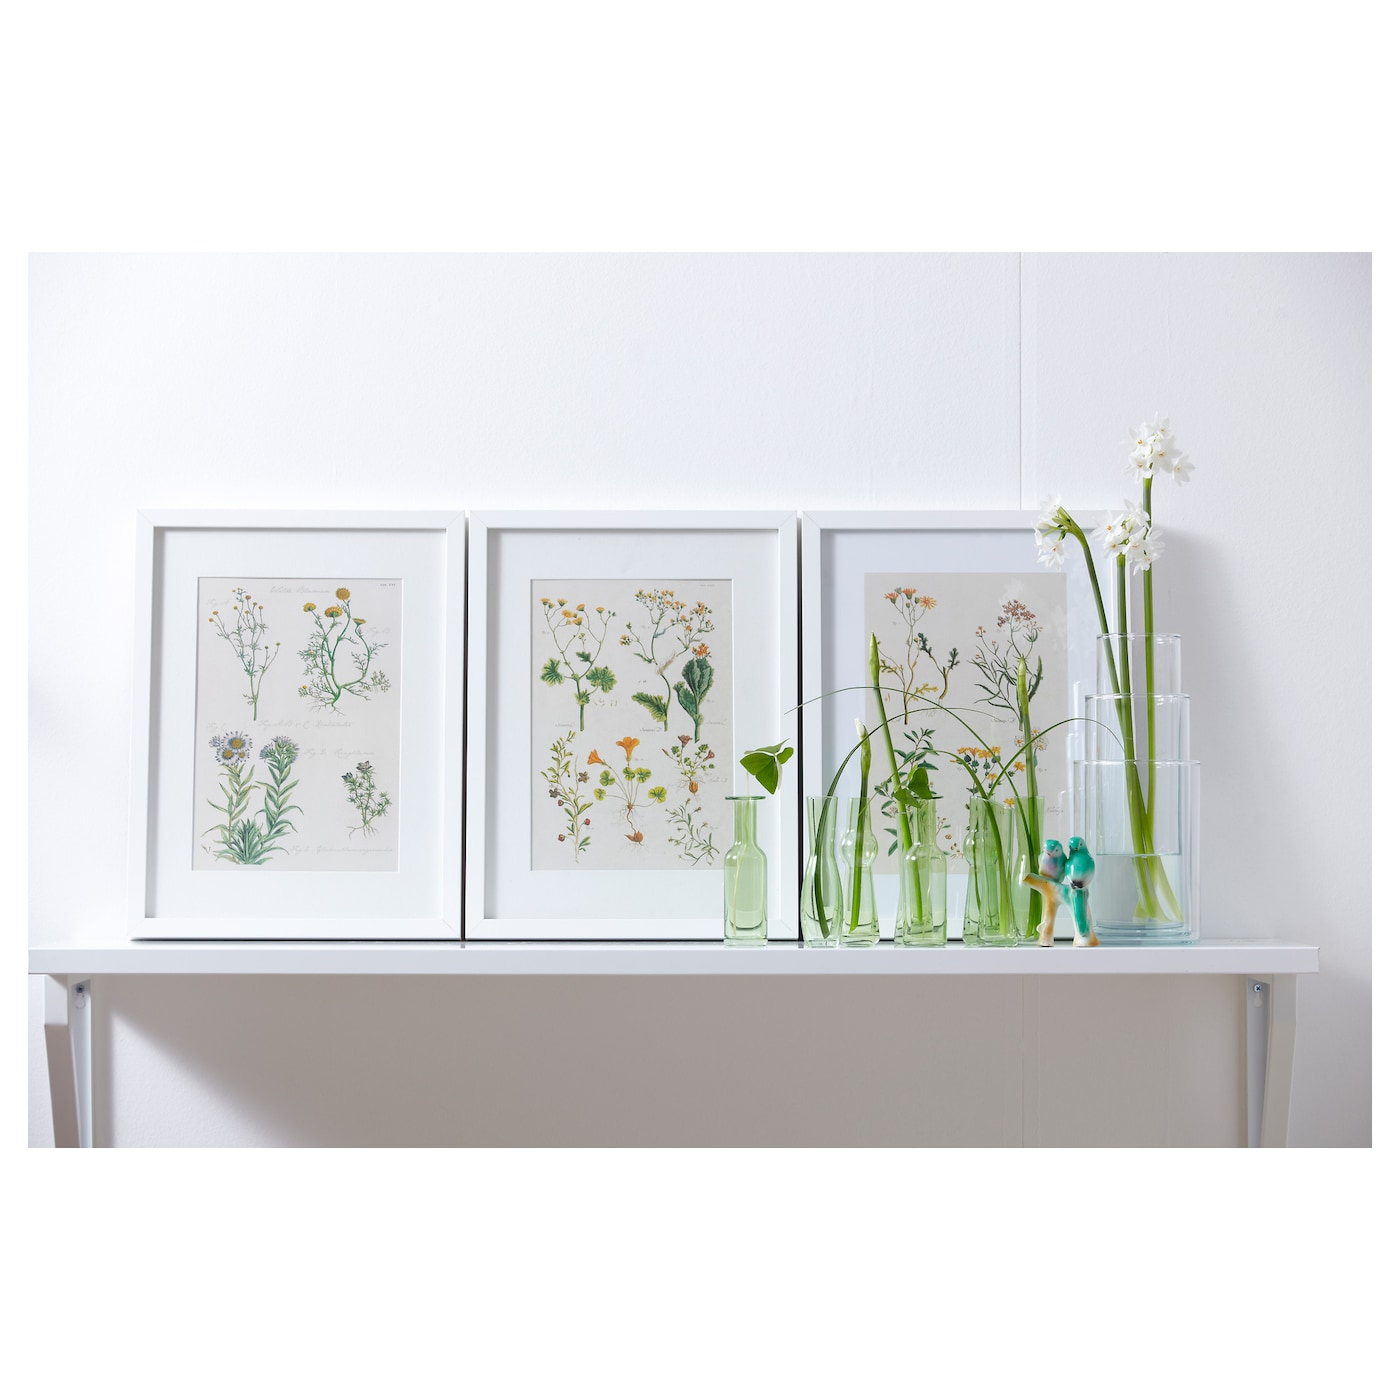 Ribba frame white 30x40 cm ikea for Ikea ribba weiay